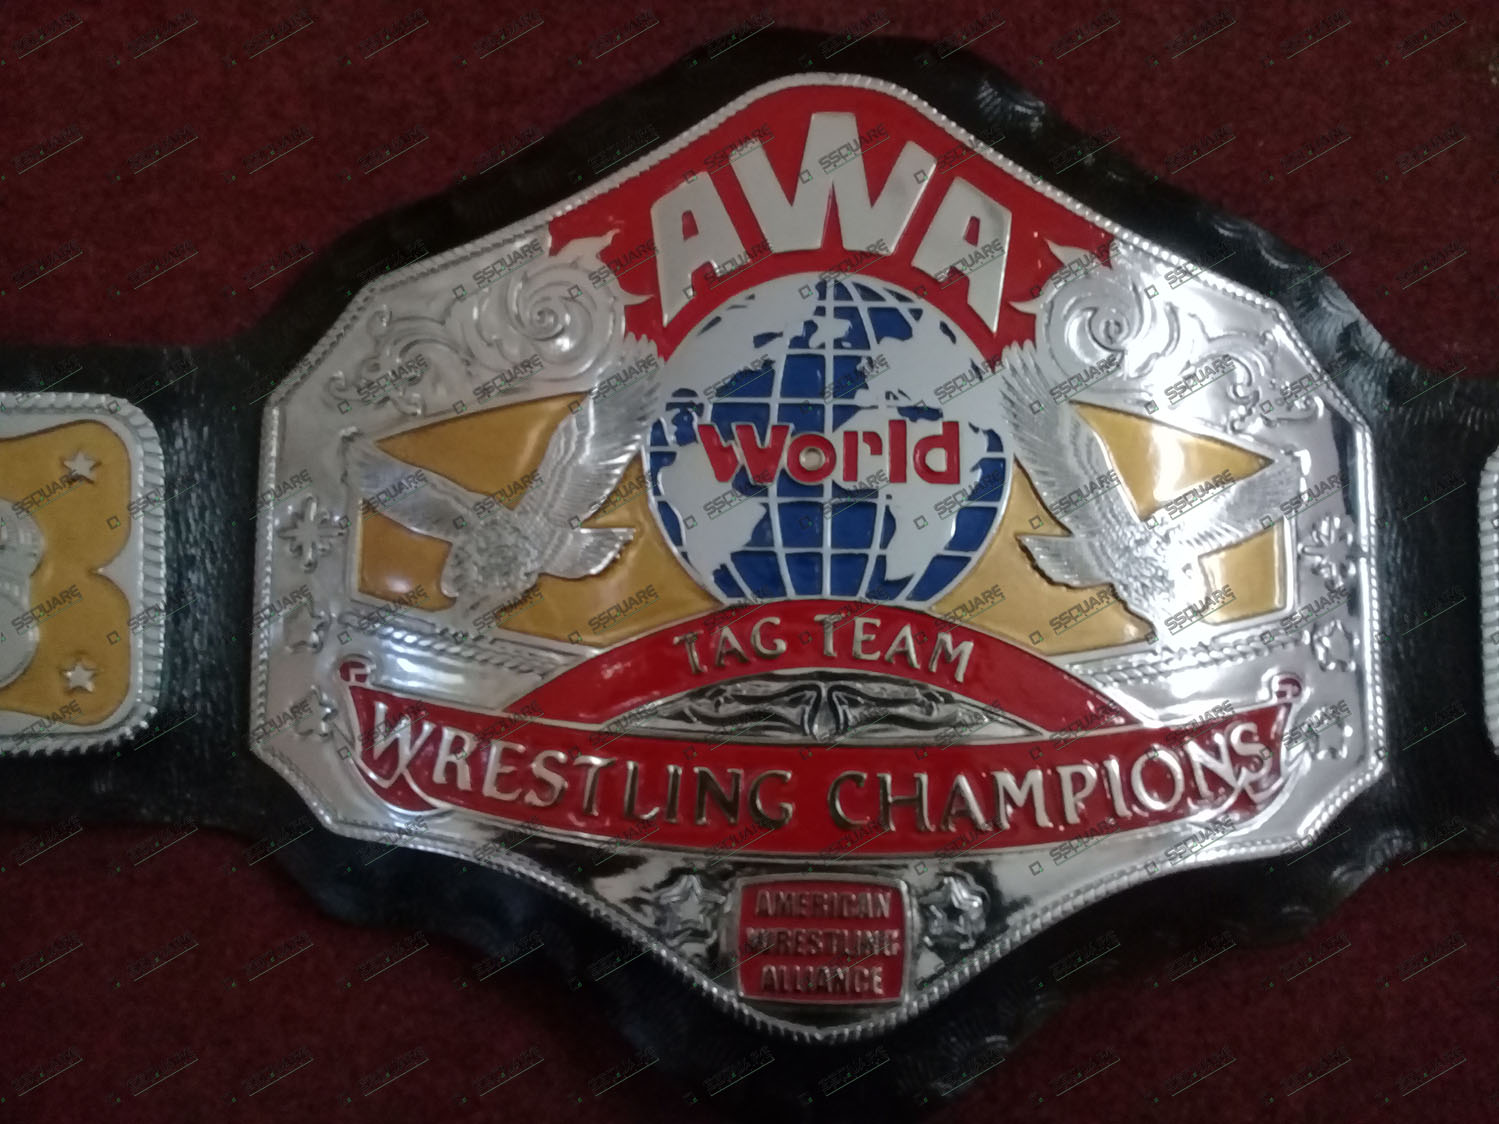 AWA World Tag team Wrestling Champions Belt